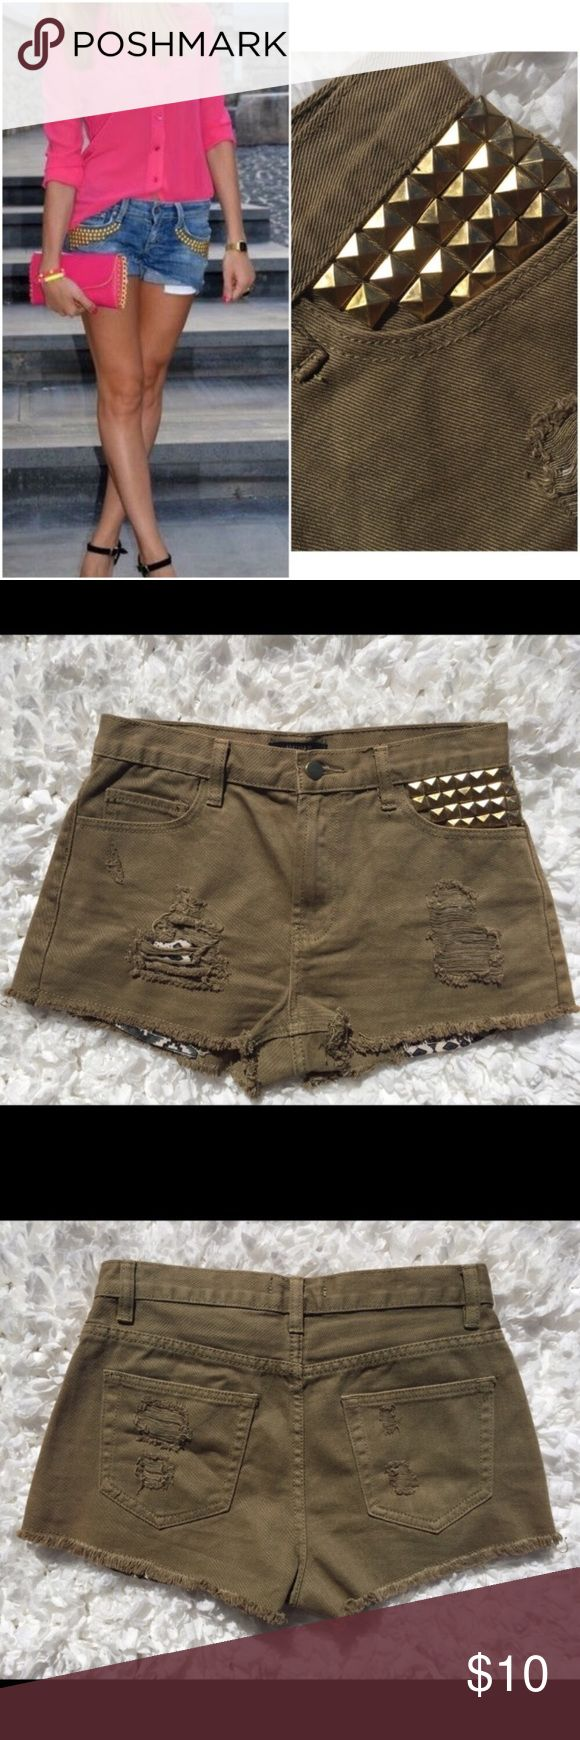 Khaki High Waist Gold Studded Pocket Tribal Shorts Olive Khaki High Waist Gold Studded Pocket Tribal Shorts. These cute shorts have a destroyed theme and a tribal/Aztec print under the ripped part. Cute with a loose tee and boots! Can be styled SO many ways! Listing them as 'Green' because they are close to an 'Olive' color. Style photo is not mine and is for style purposes only. Forever 21 Shorts